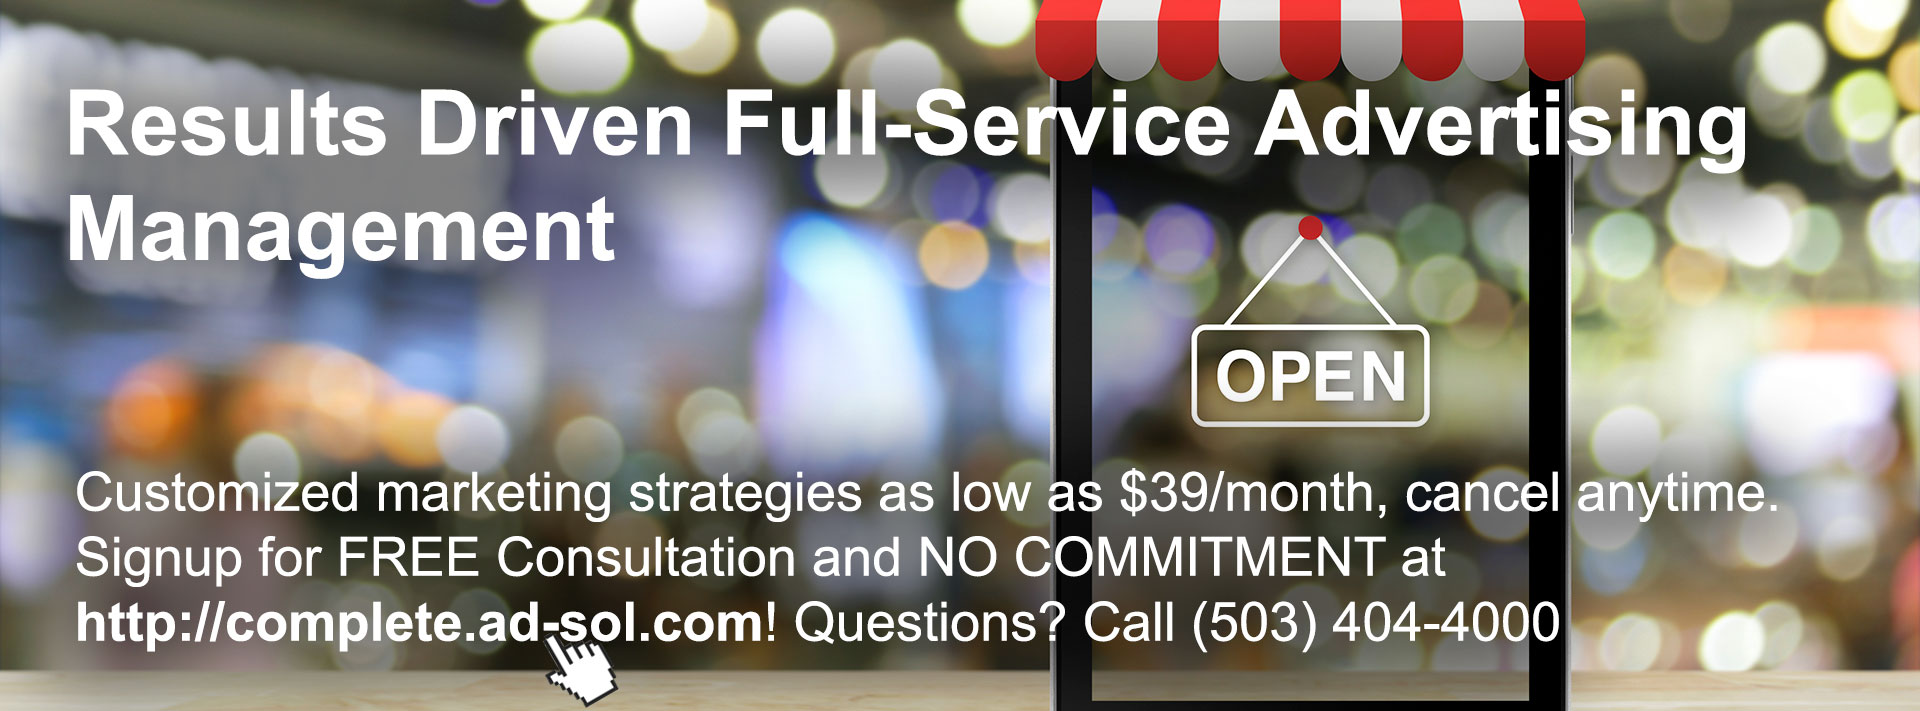 Results Driven Full-Service Advertising Management